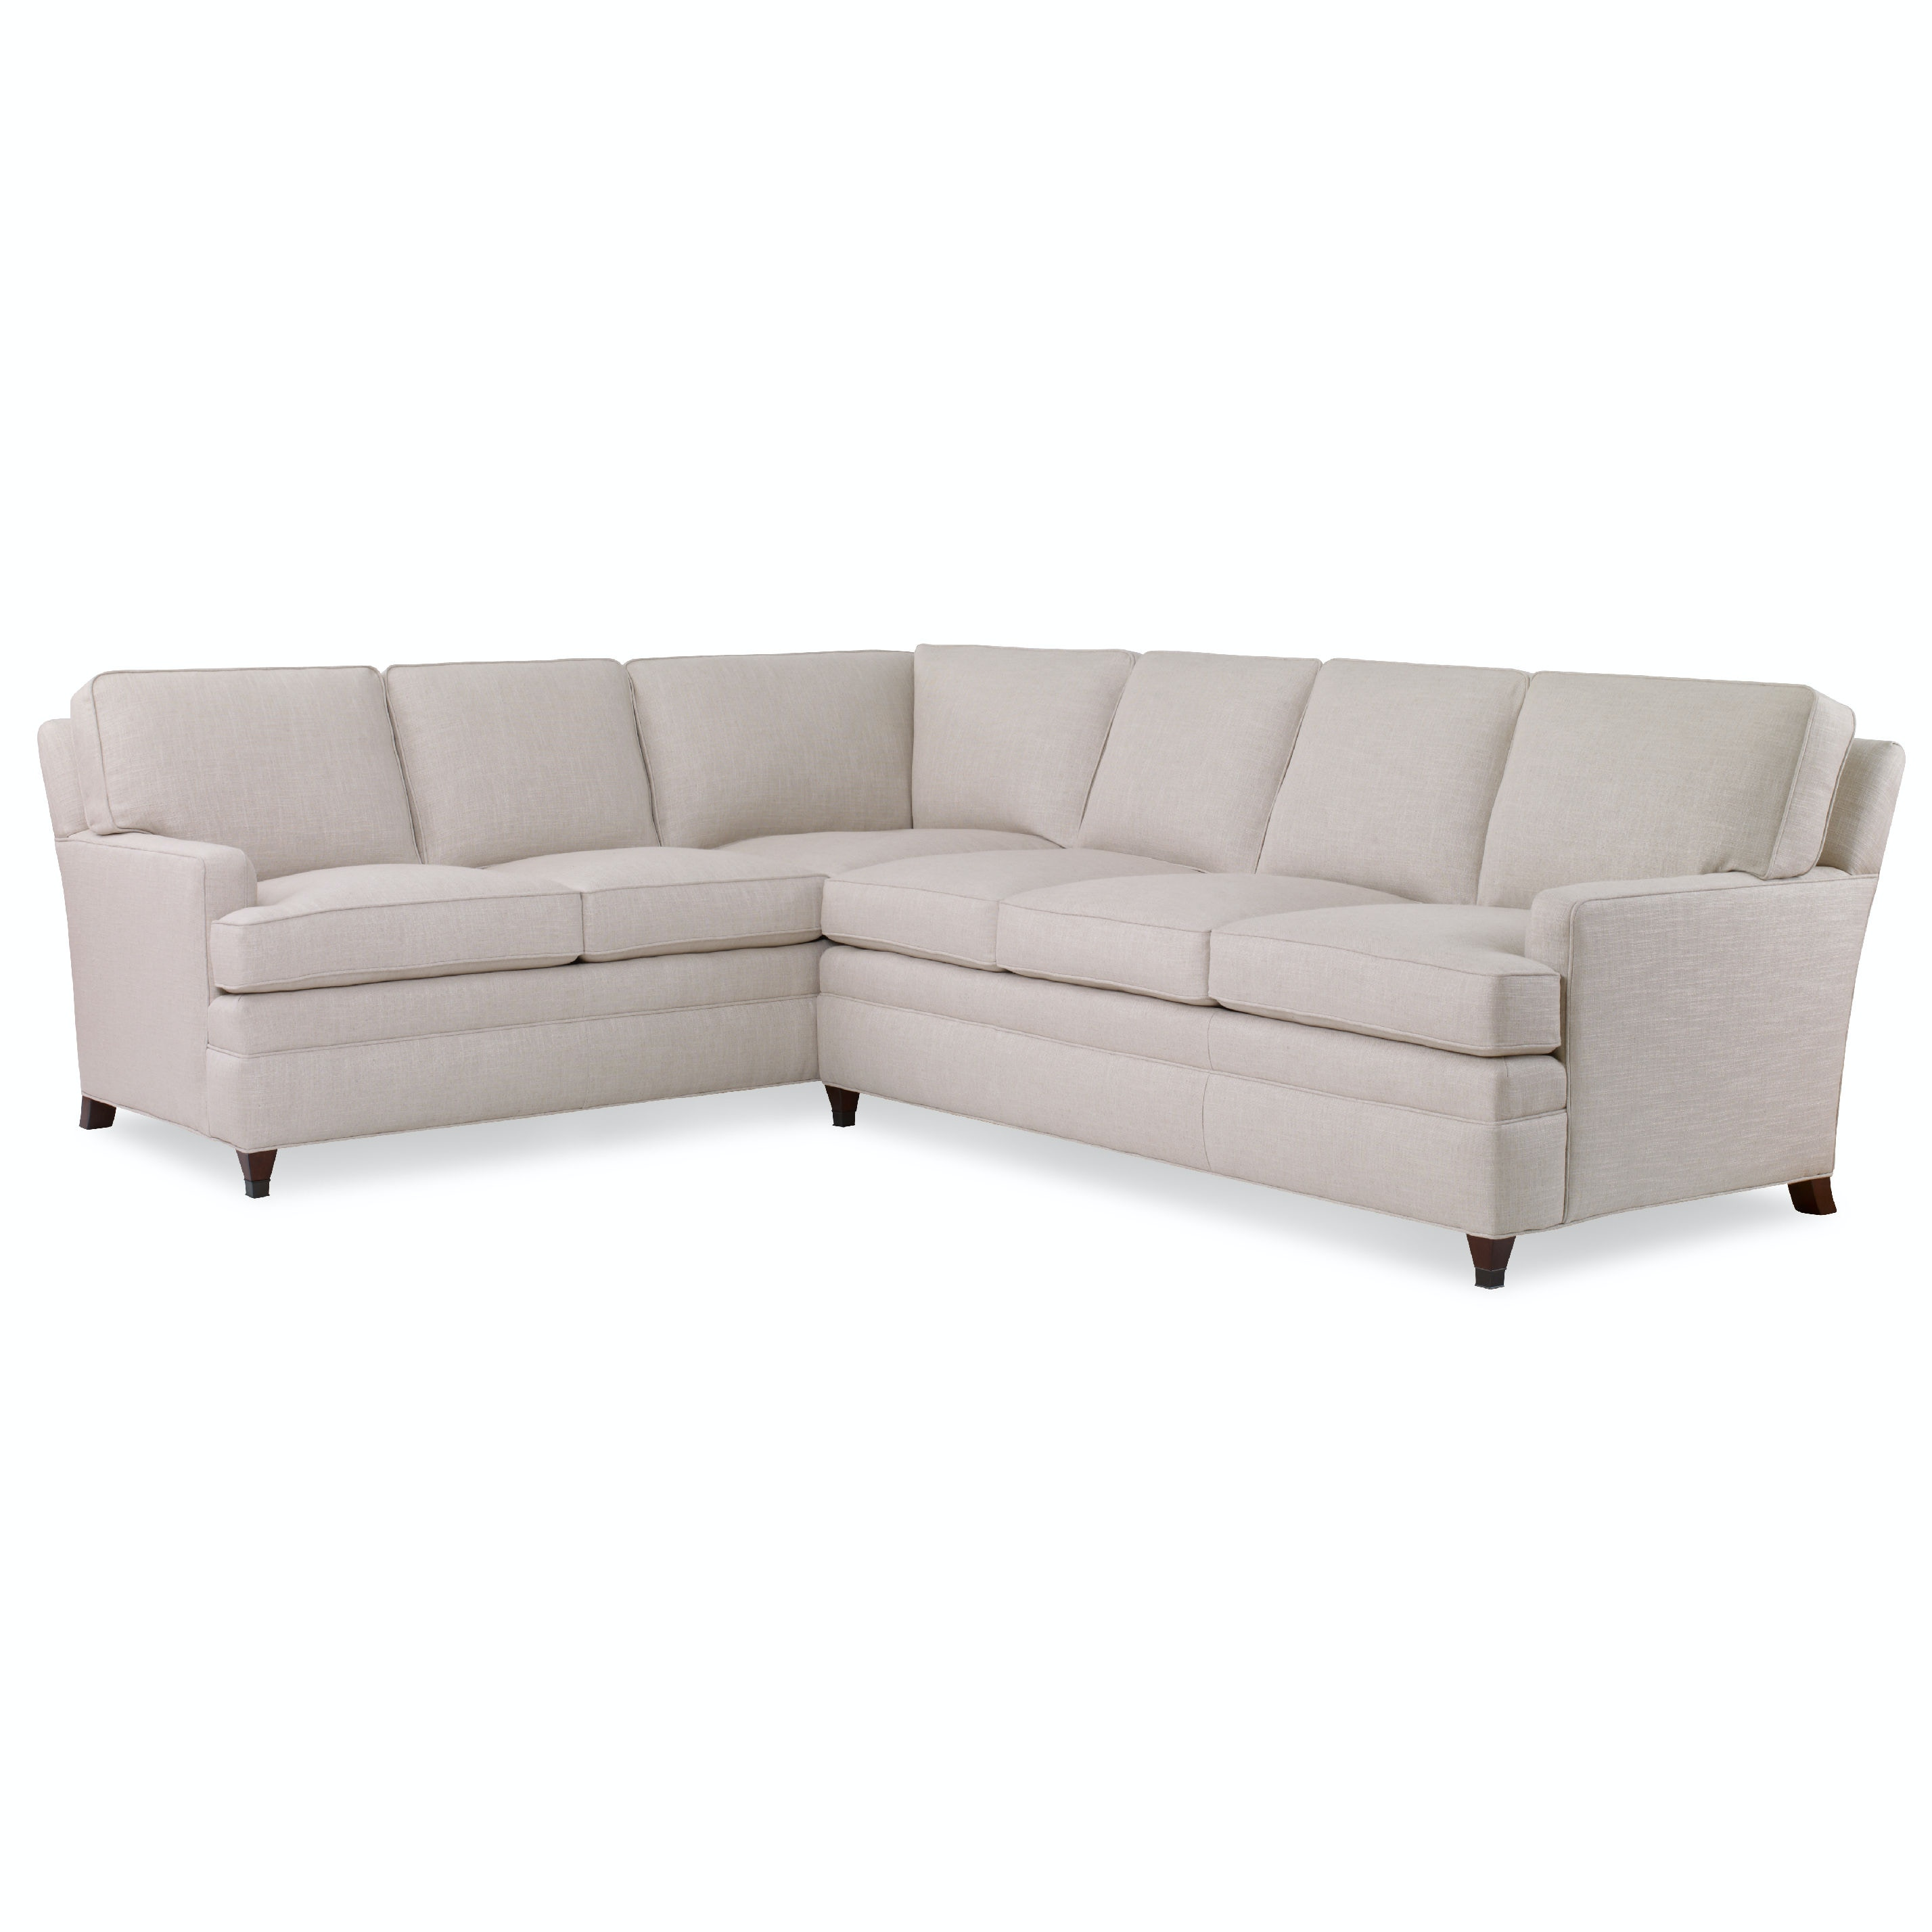 Lee Jofa Workroom Sectional JF-LCS/RAS TTS BE MB  sc 1 st  Lee Jofa : lee sectional - Sectionals, Sofas & Couches